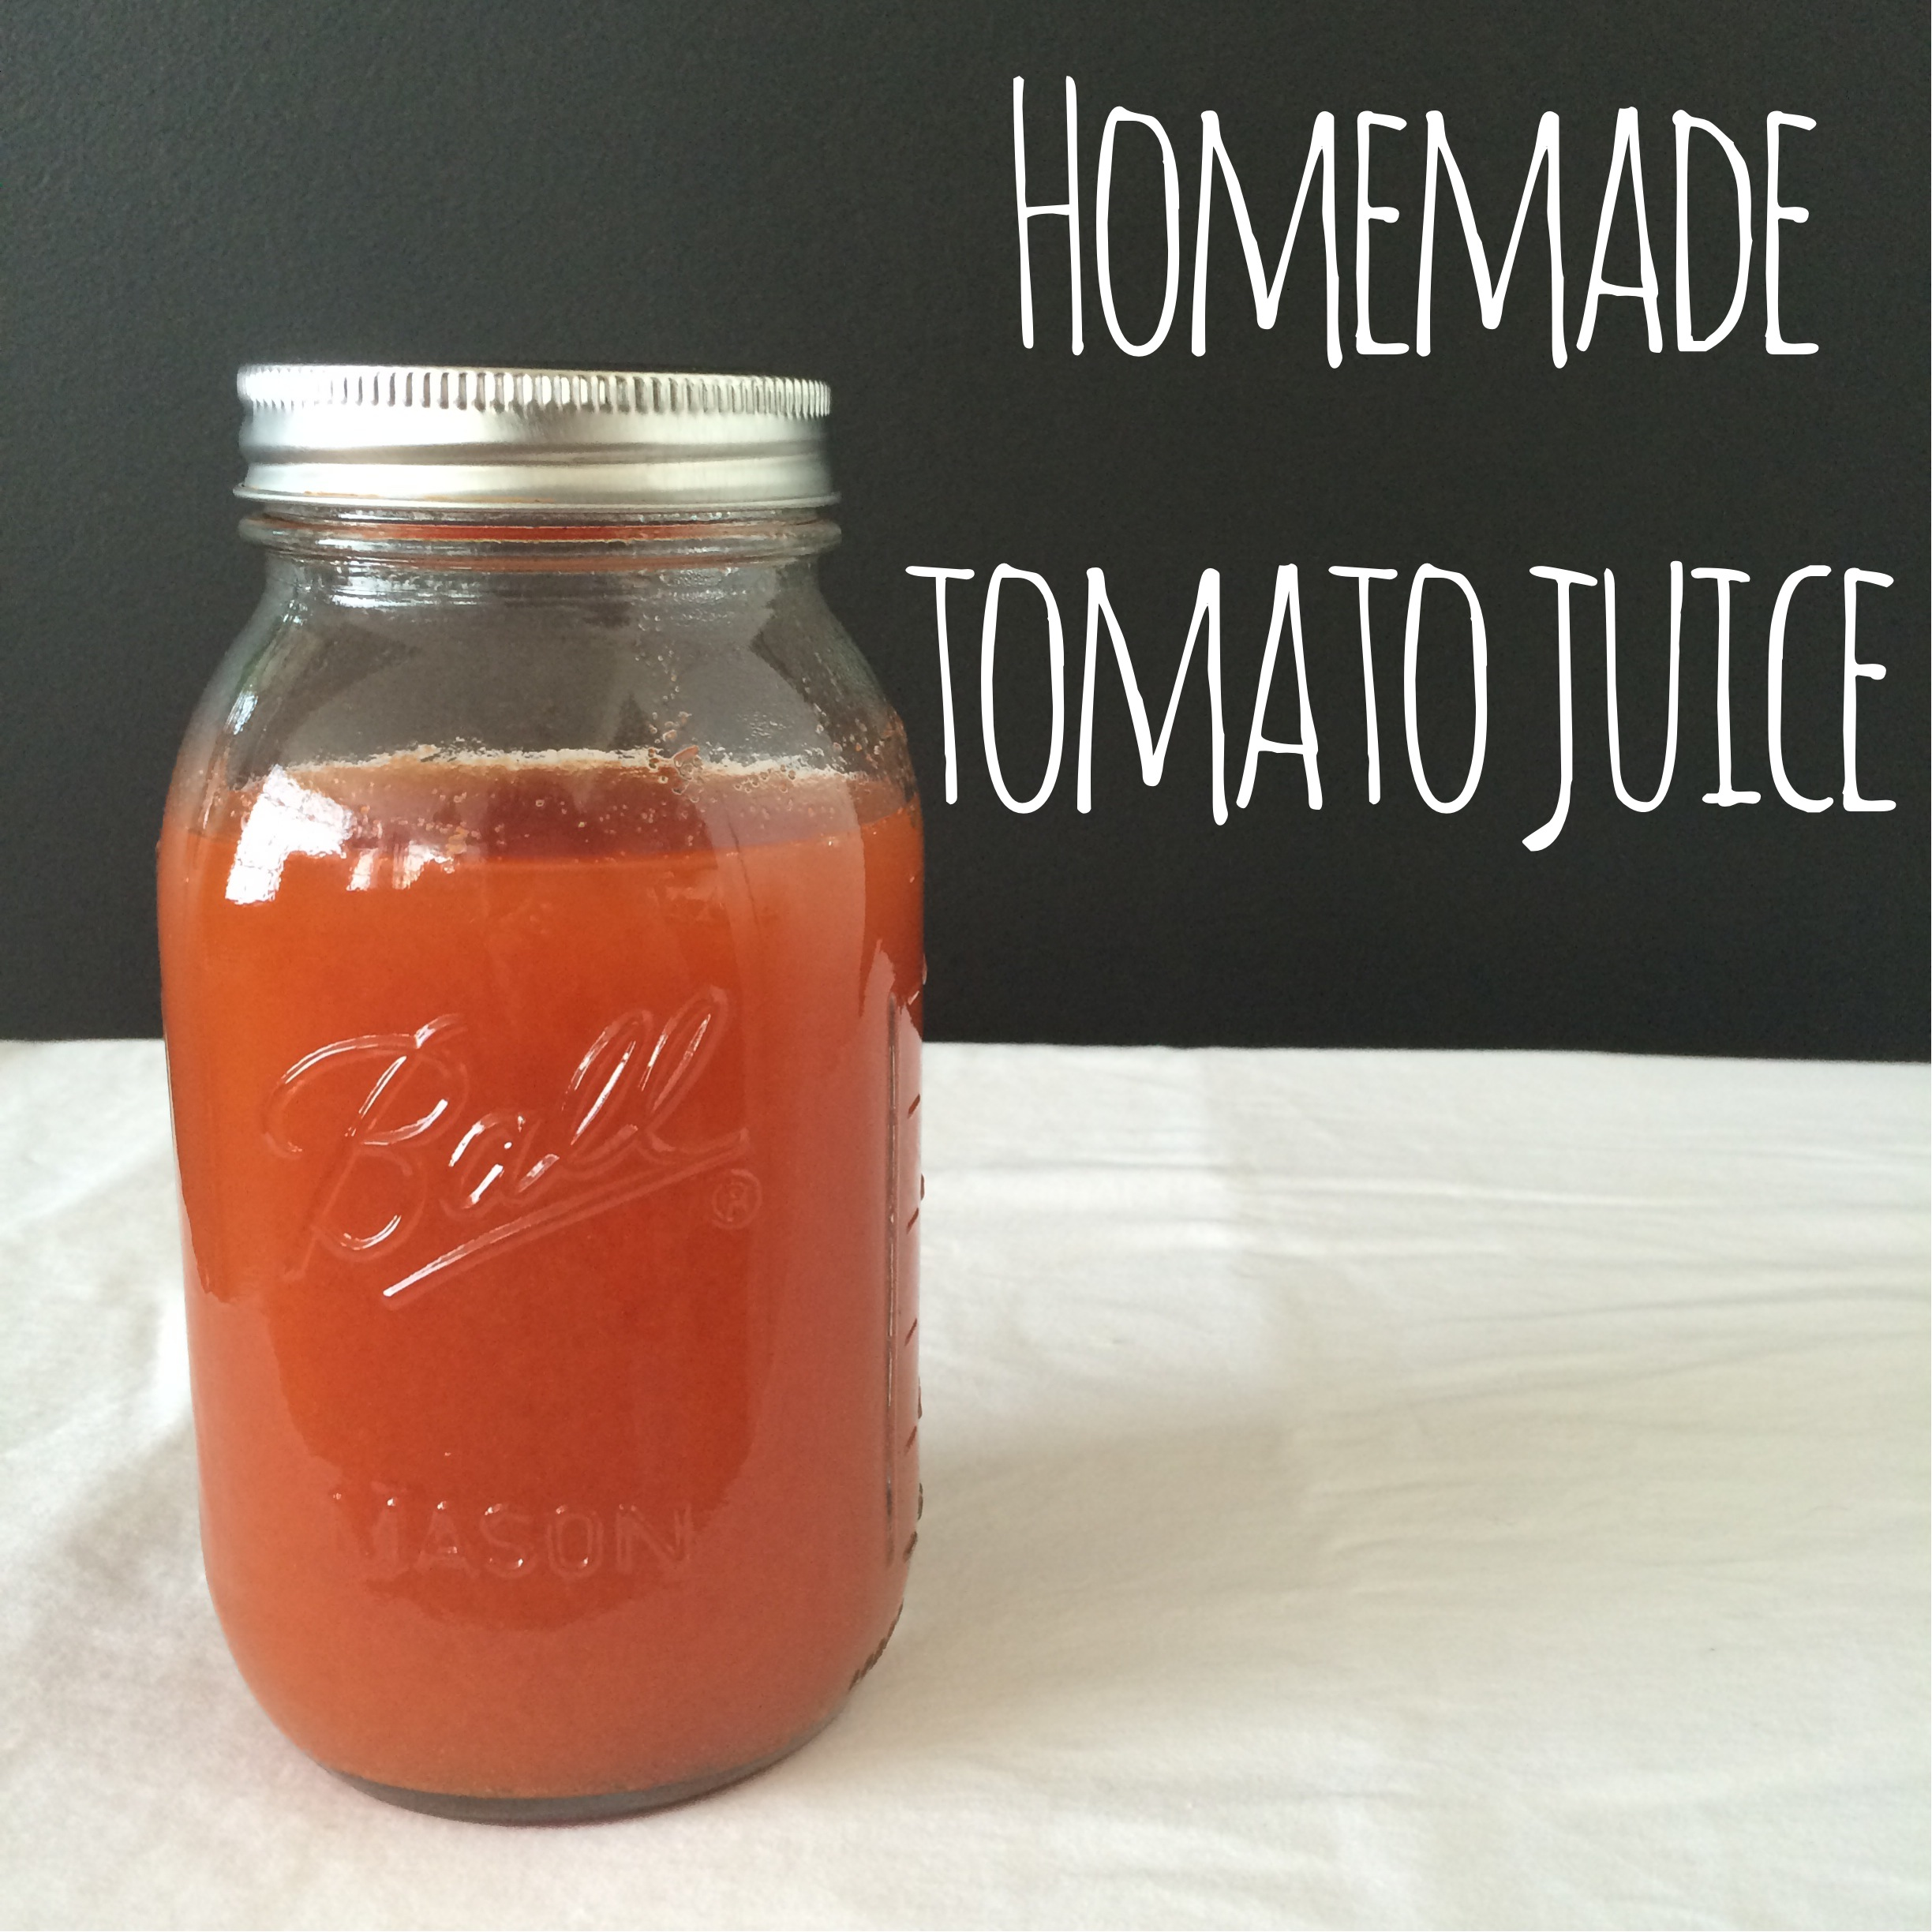 Homemade Tomato Juice | Mrs Amber Apple blog